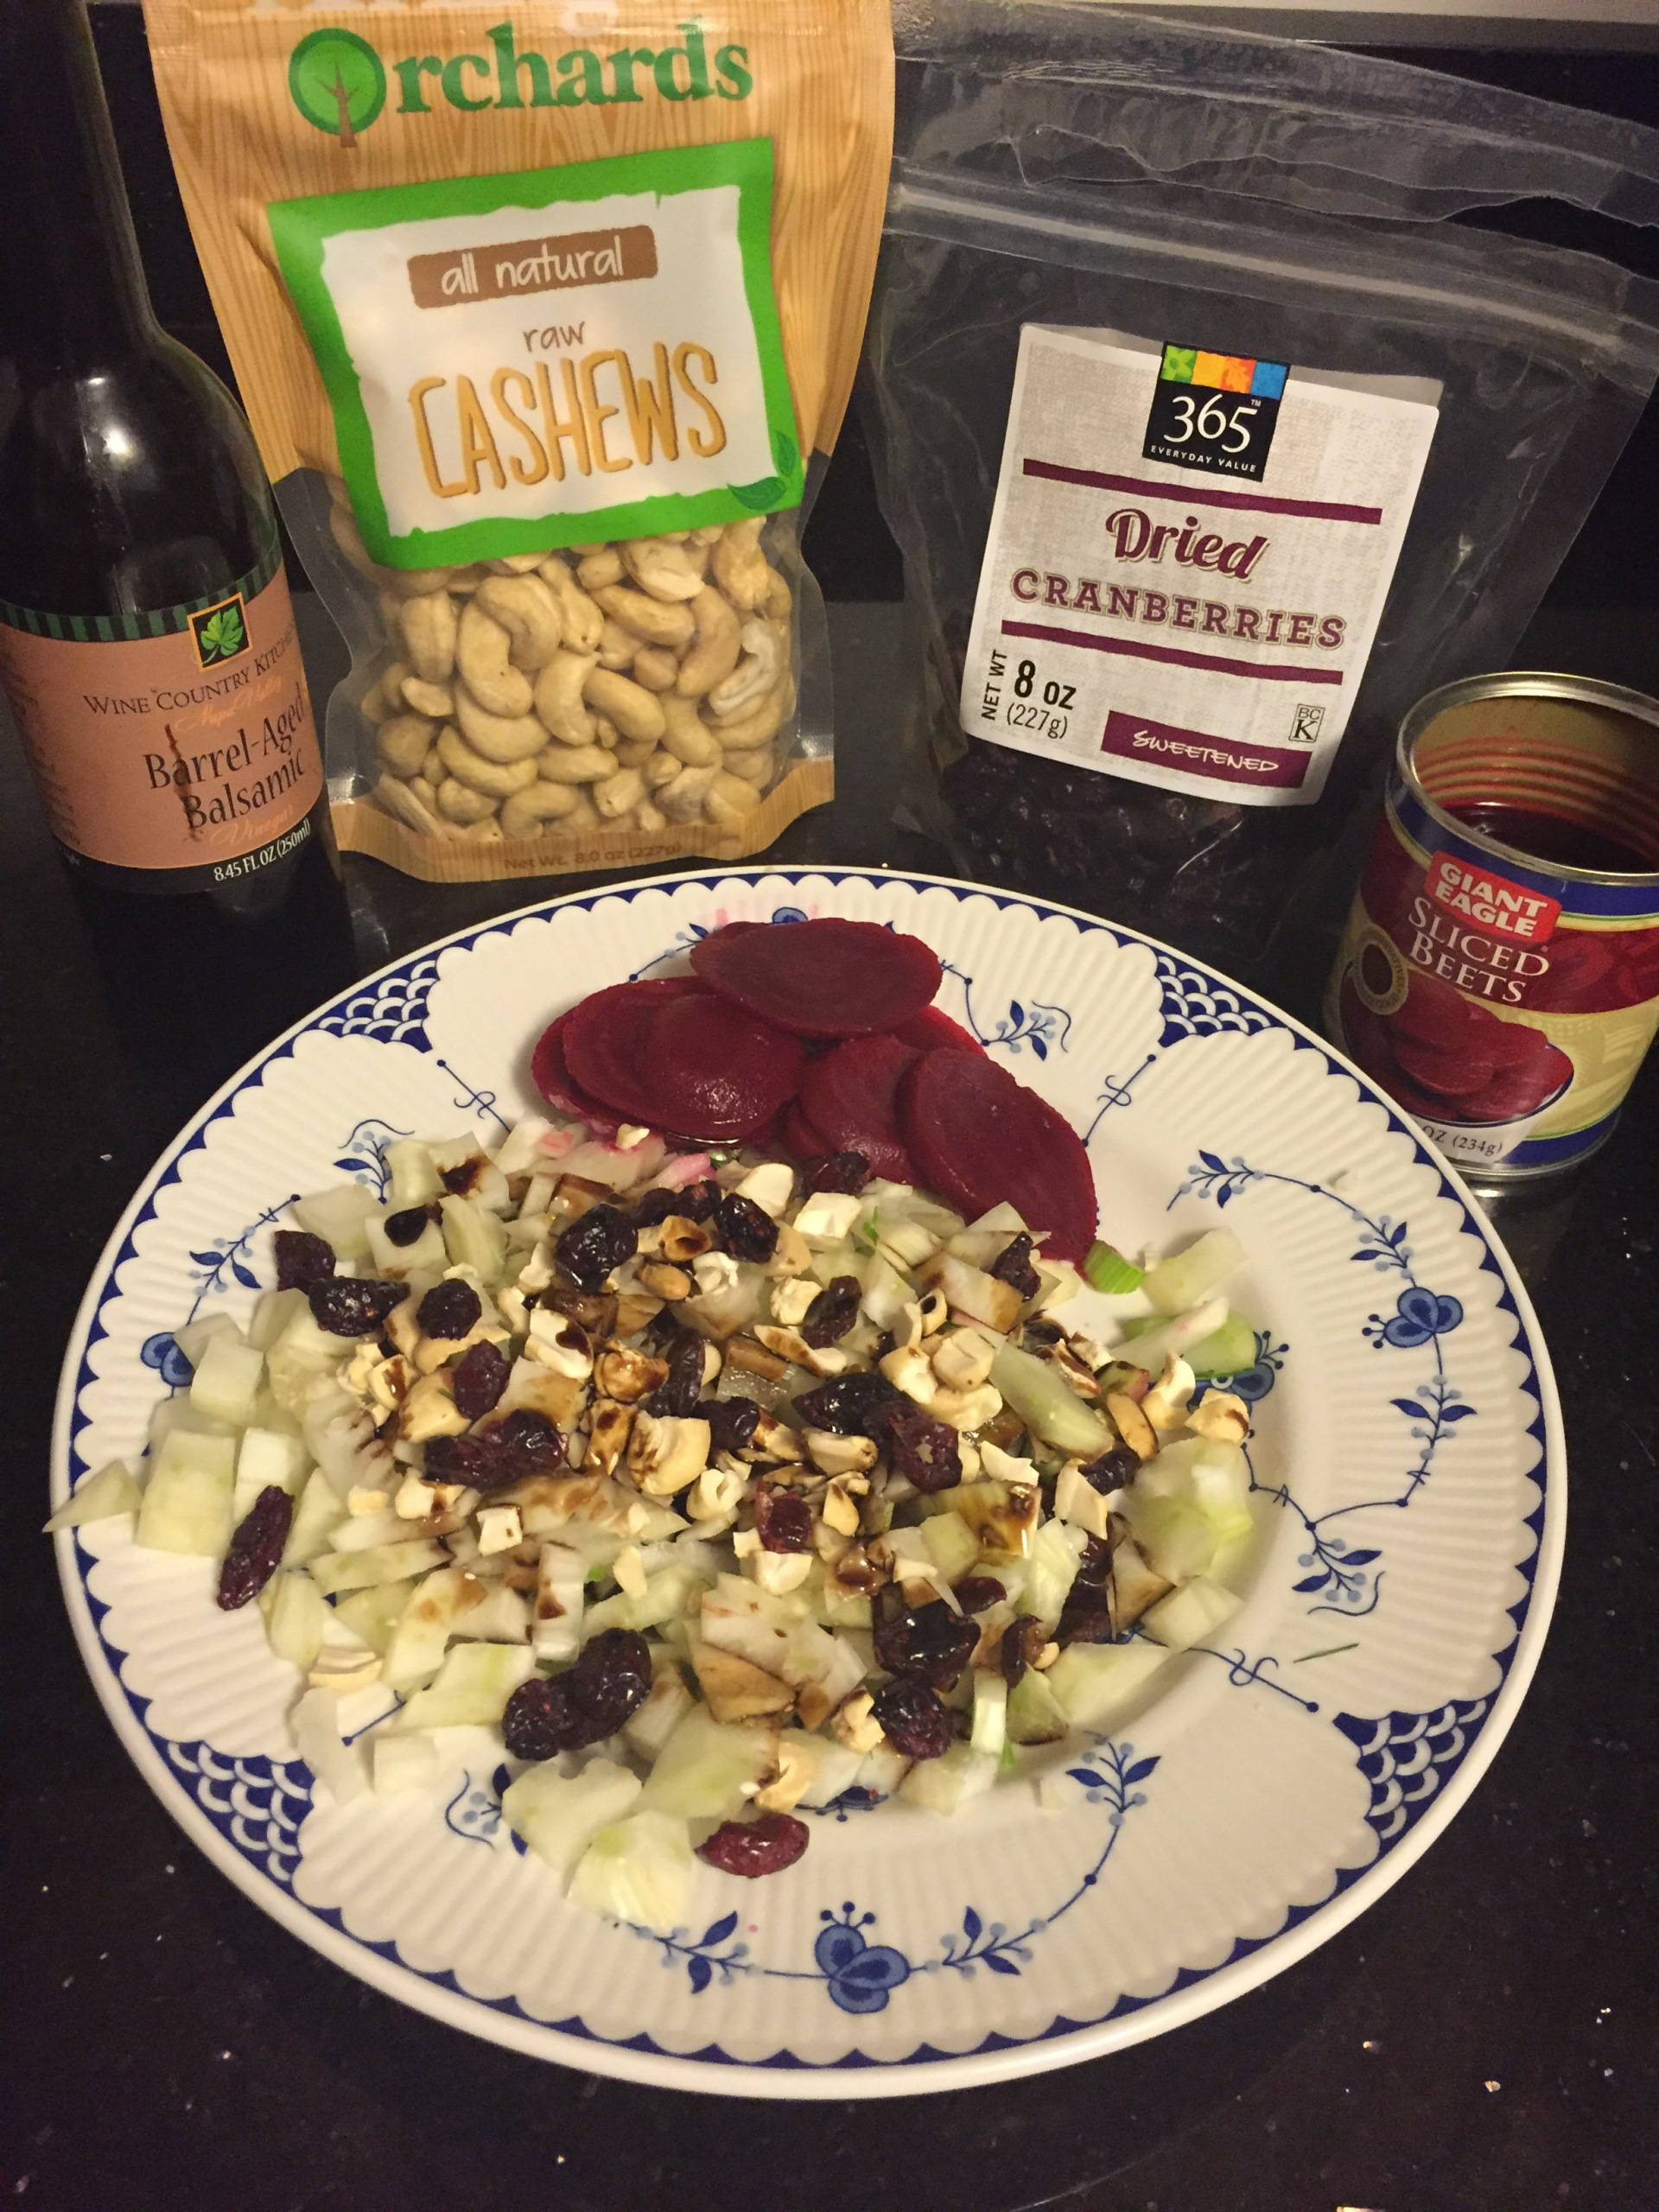 Image of fennel salad and ingredients